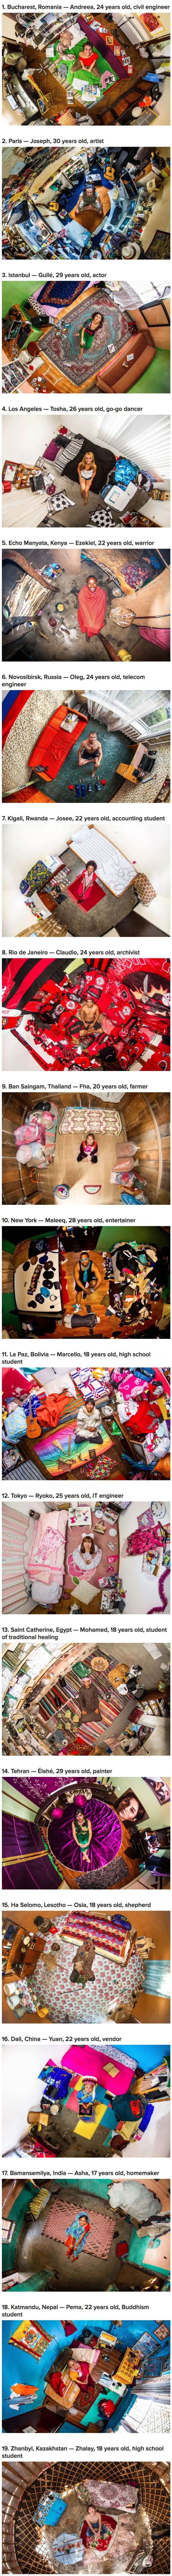 Intimate photos of millennials' bedroom around the world